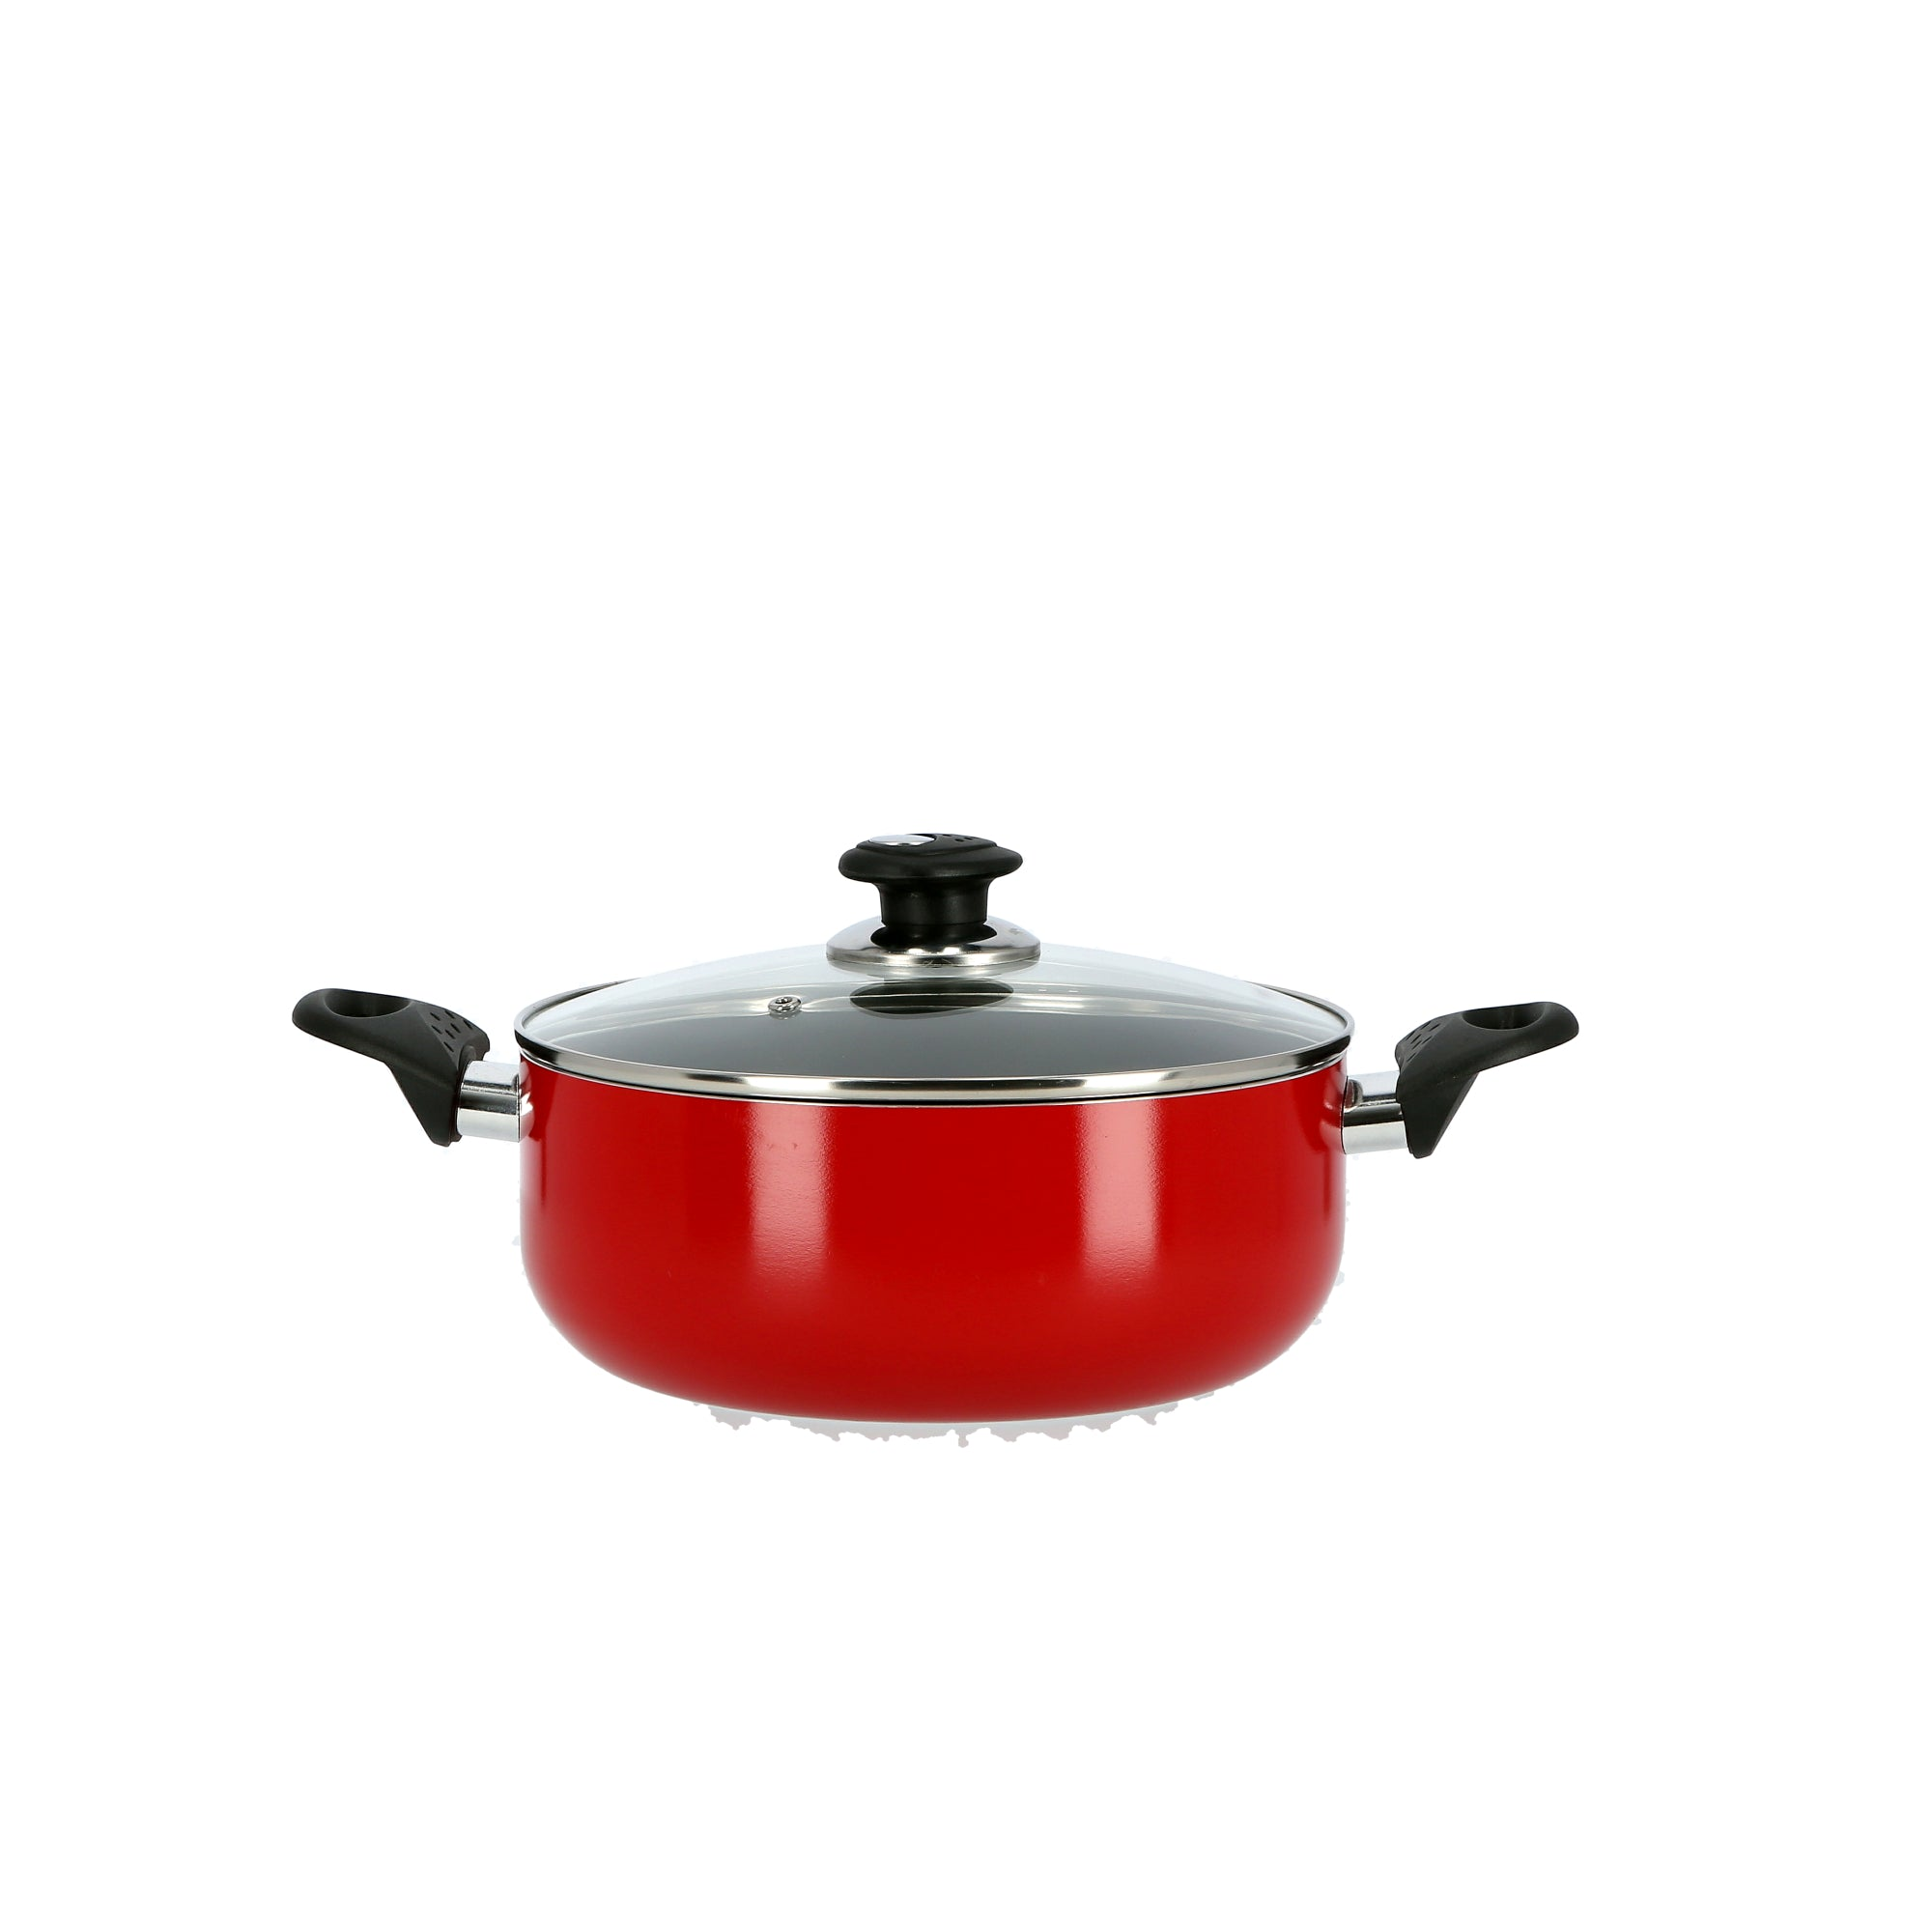 Royal ford RF6440   Non-Stick Ceramic Casserole with Glass Lid 24 cm- Durable Non-stick Coating, High-Quality Construction with Comfortable Resistant Handle | Non-Stick Dish for Gas, Induction & Ceramic Hobs